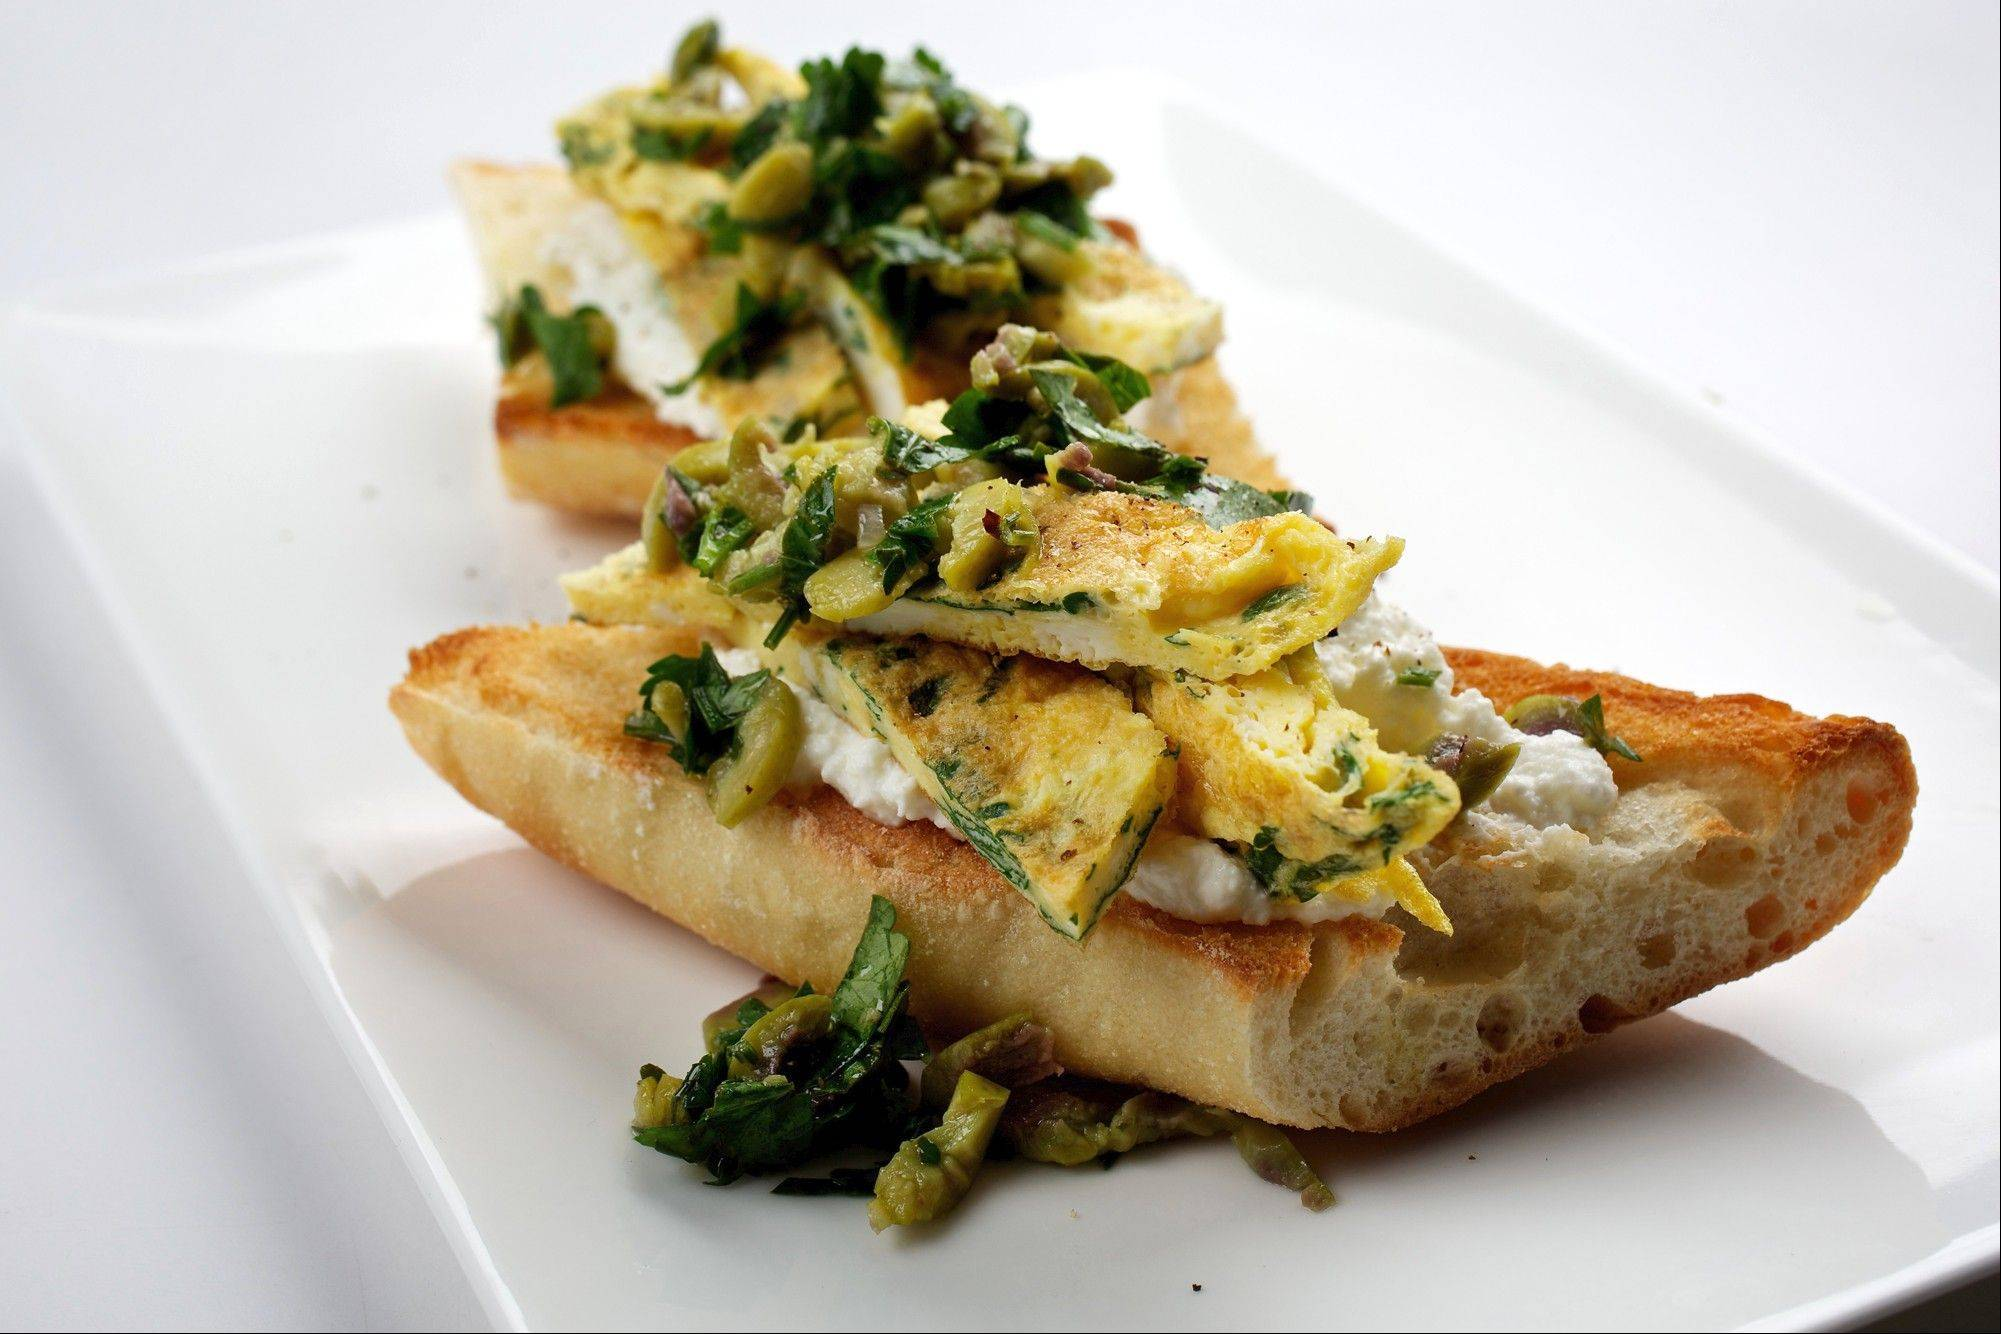 Parsley, olive, egg and ricotta come together nicely as a sandwich filling for a baguette. Or, forget the toast and enjoy it as an omelet.